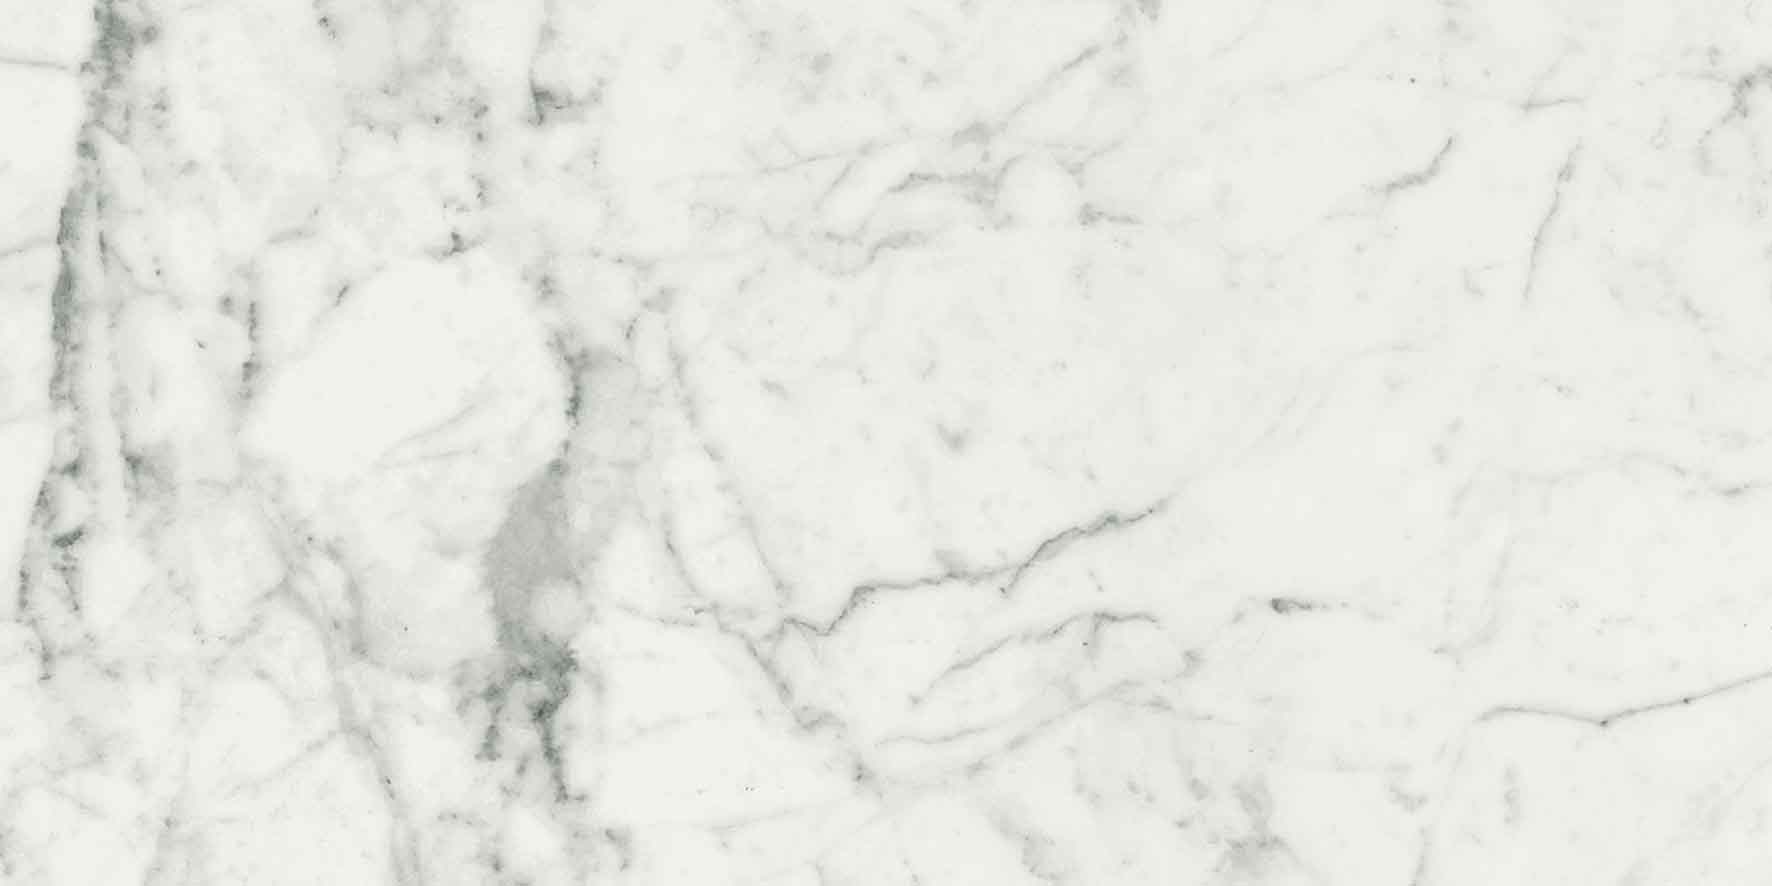 Antique Marble Ghost Marble 01 Glossy 10mm 40 x 80